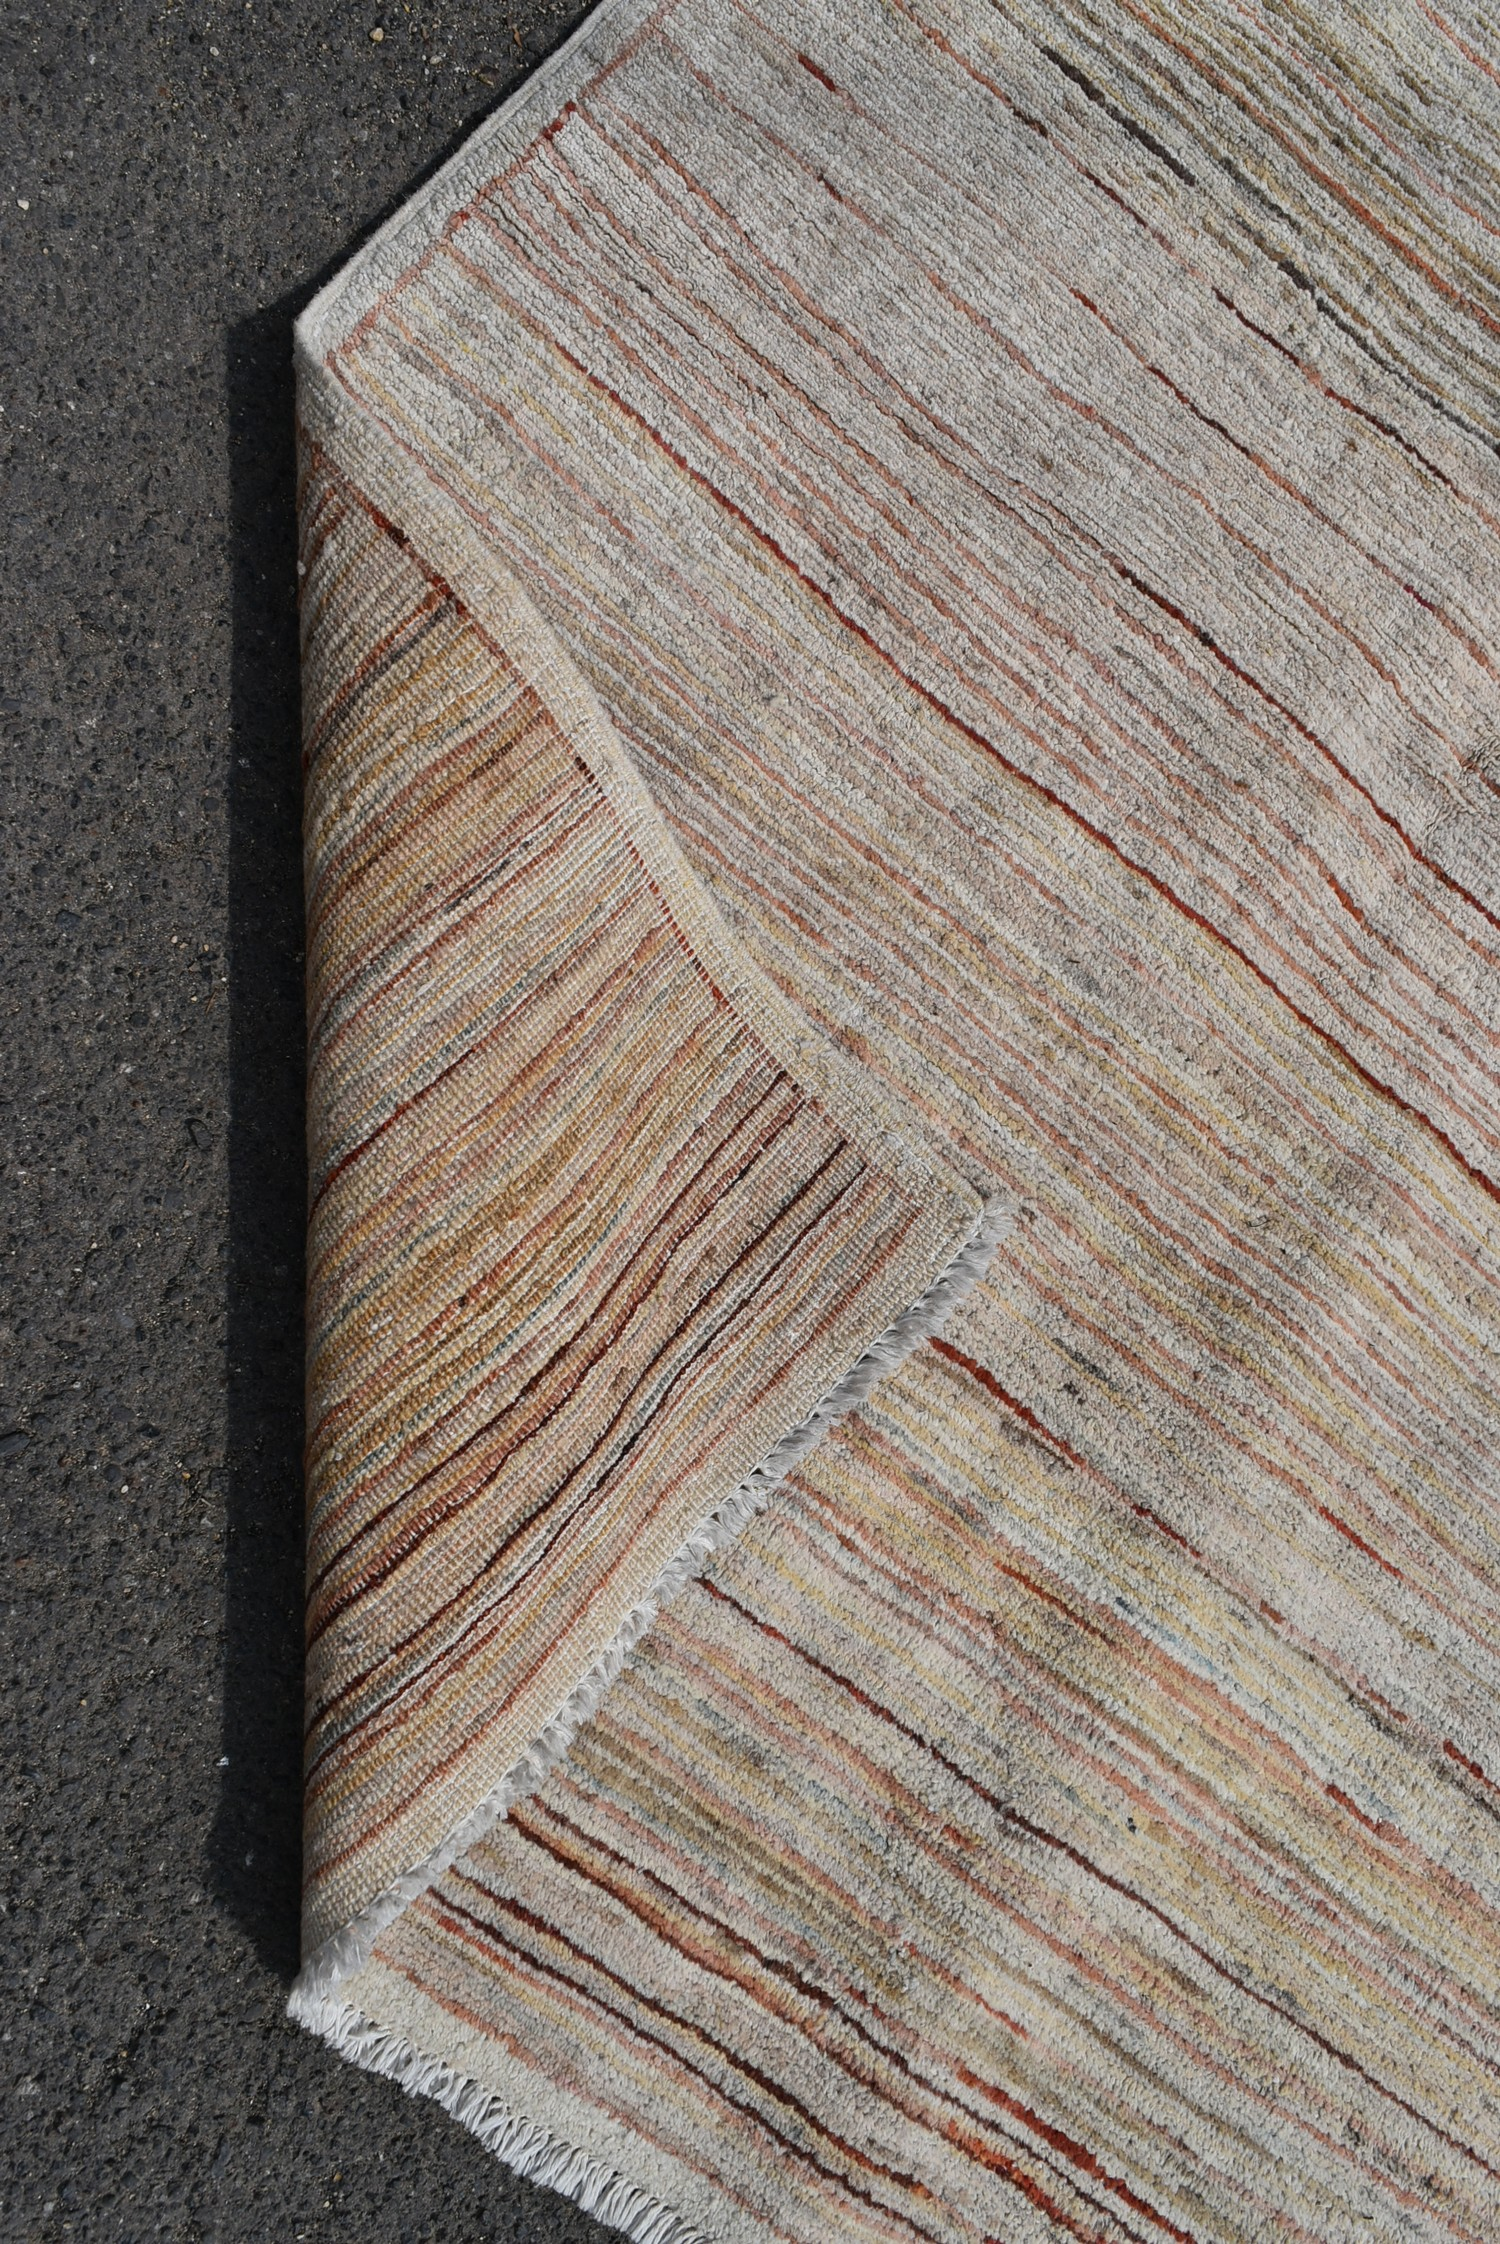 A modern rug with cross weave in hues of red and beige L.140xW.100cm - Image 3 of 3